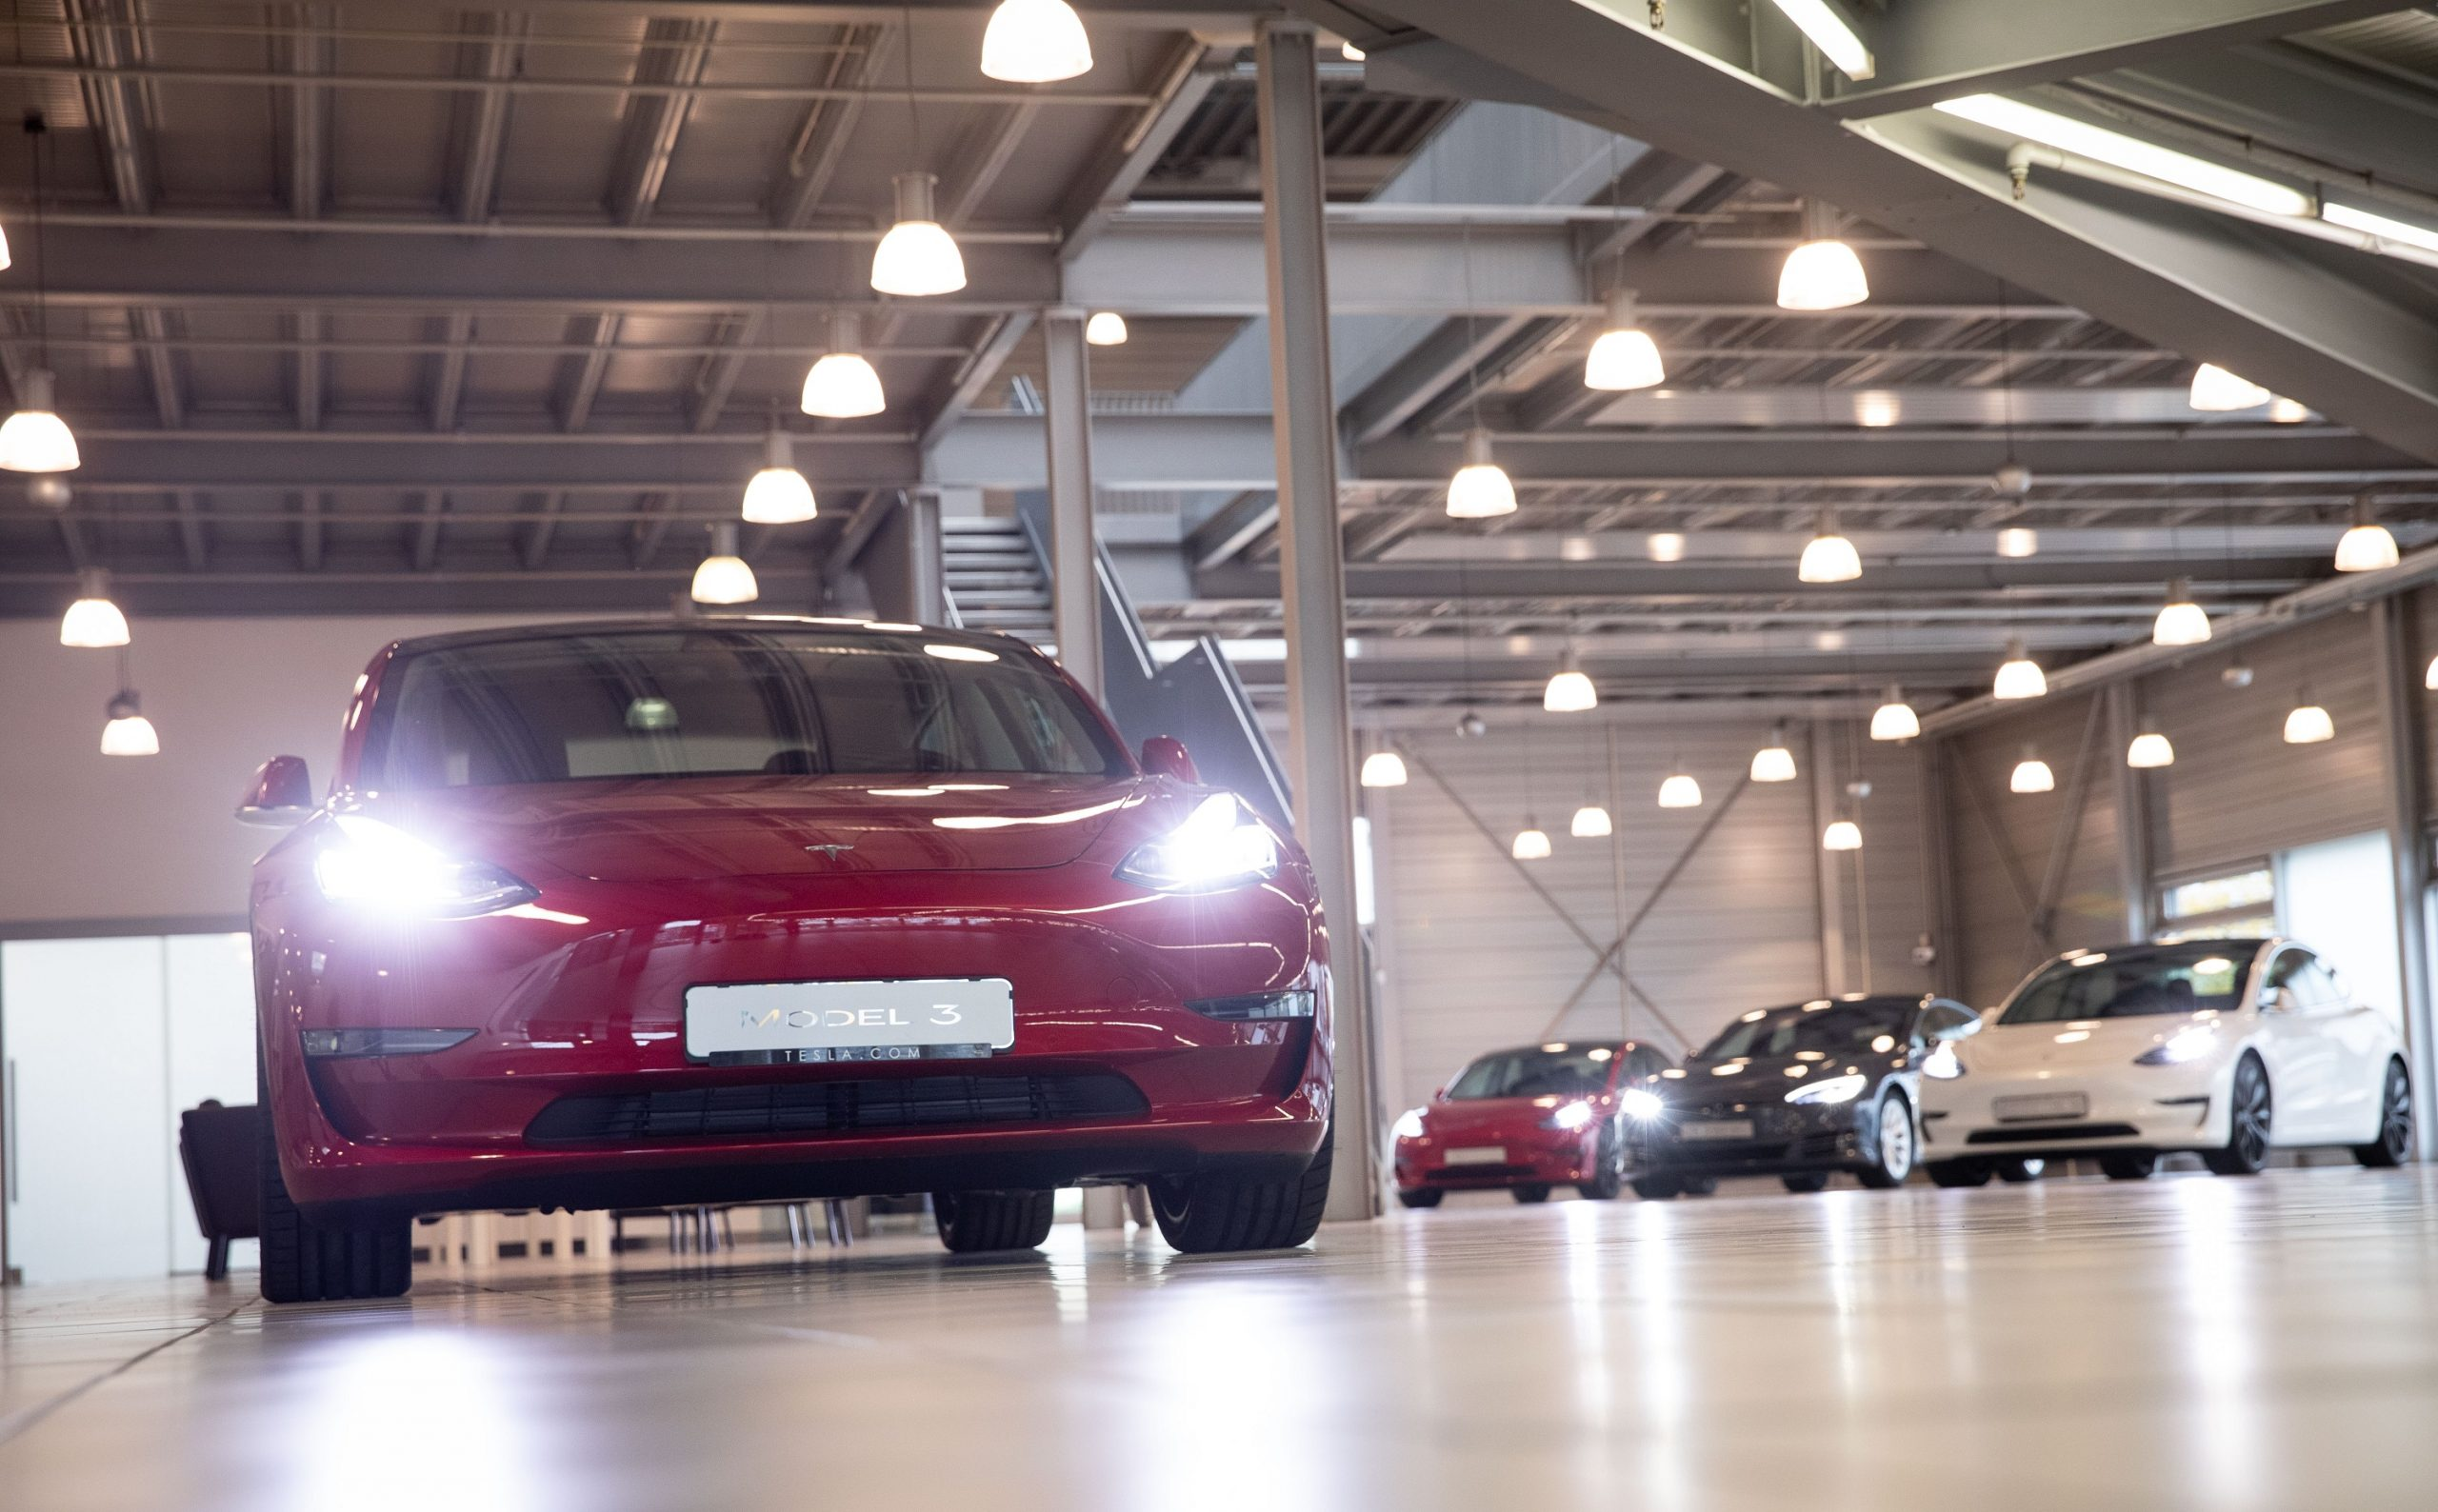 A red Tesla Model 3, similar to the viral car on TikTok, in a service center shot from the front